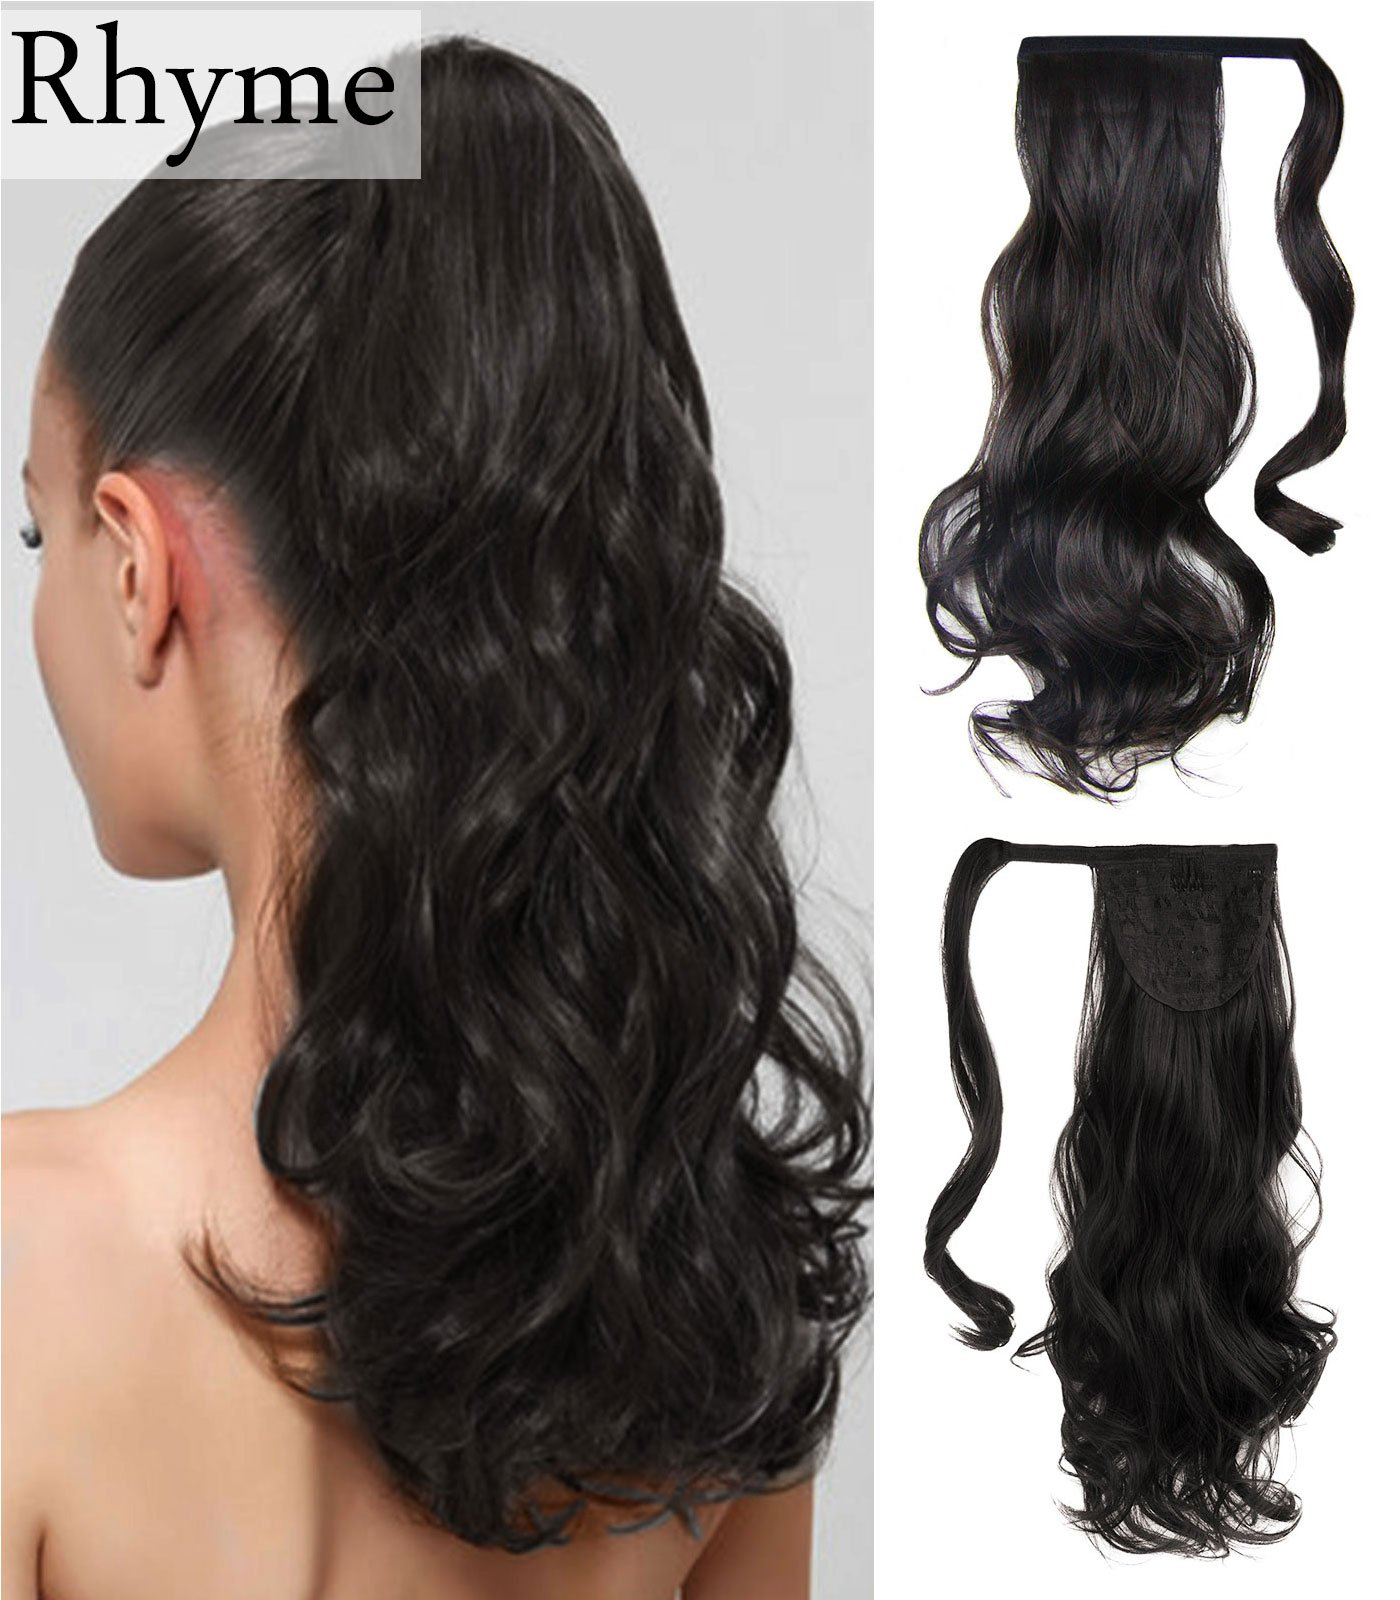 Amazon Rhyme 16 Medium Brown Ponytail Wrap Around Hair